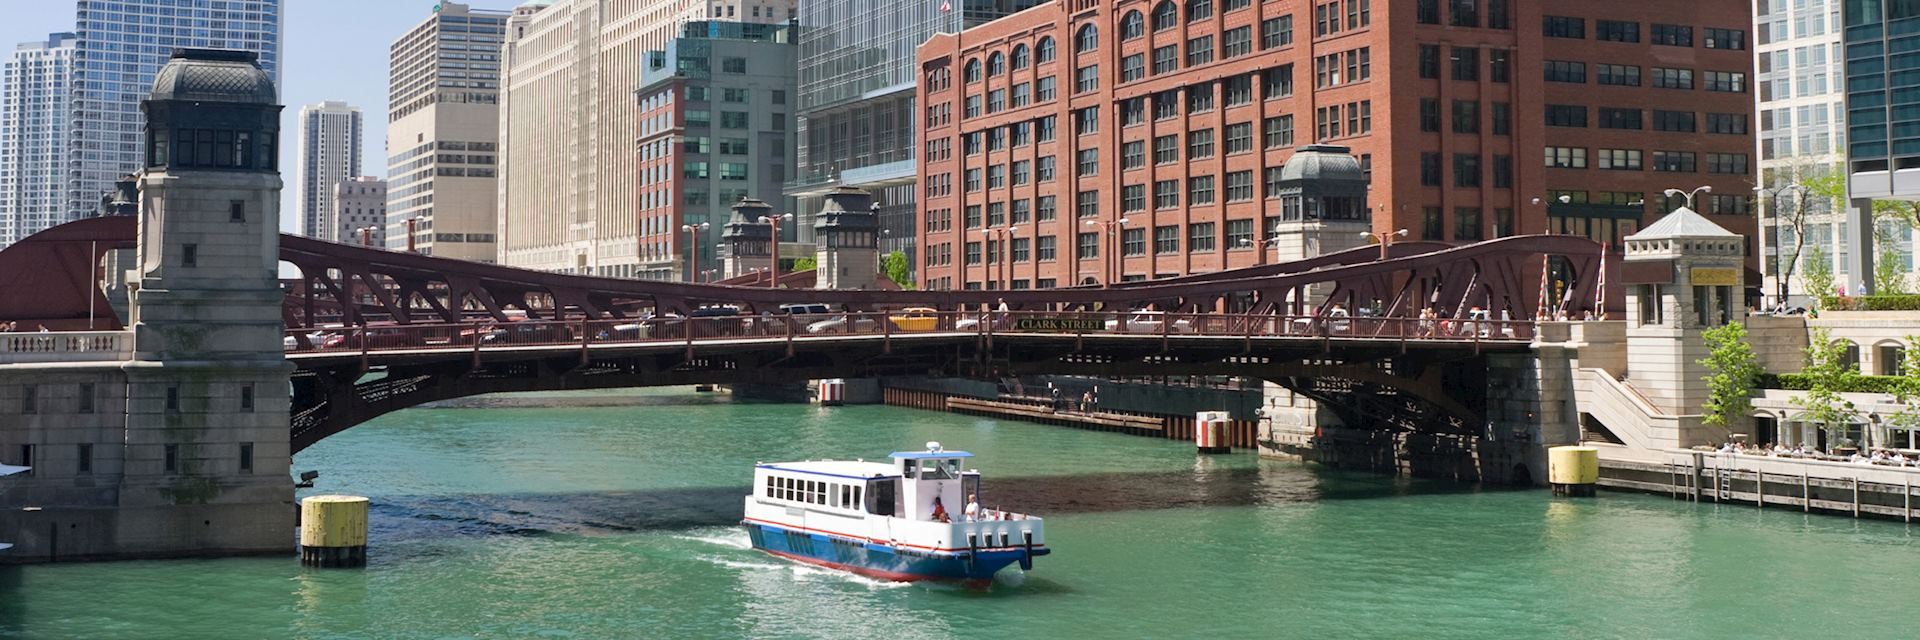 Cruising on the Chicago river, USA